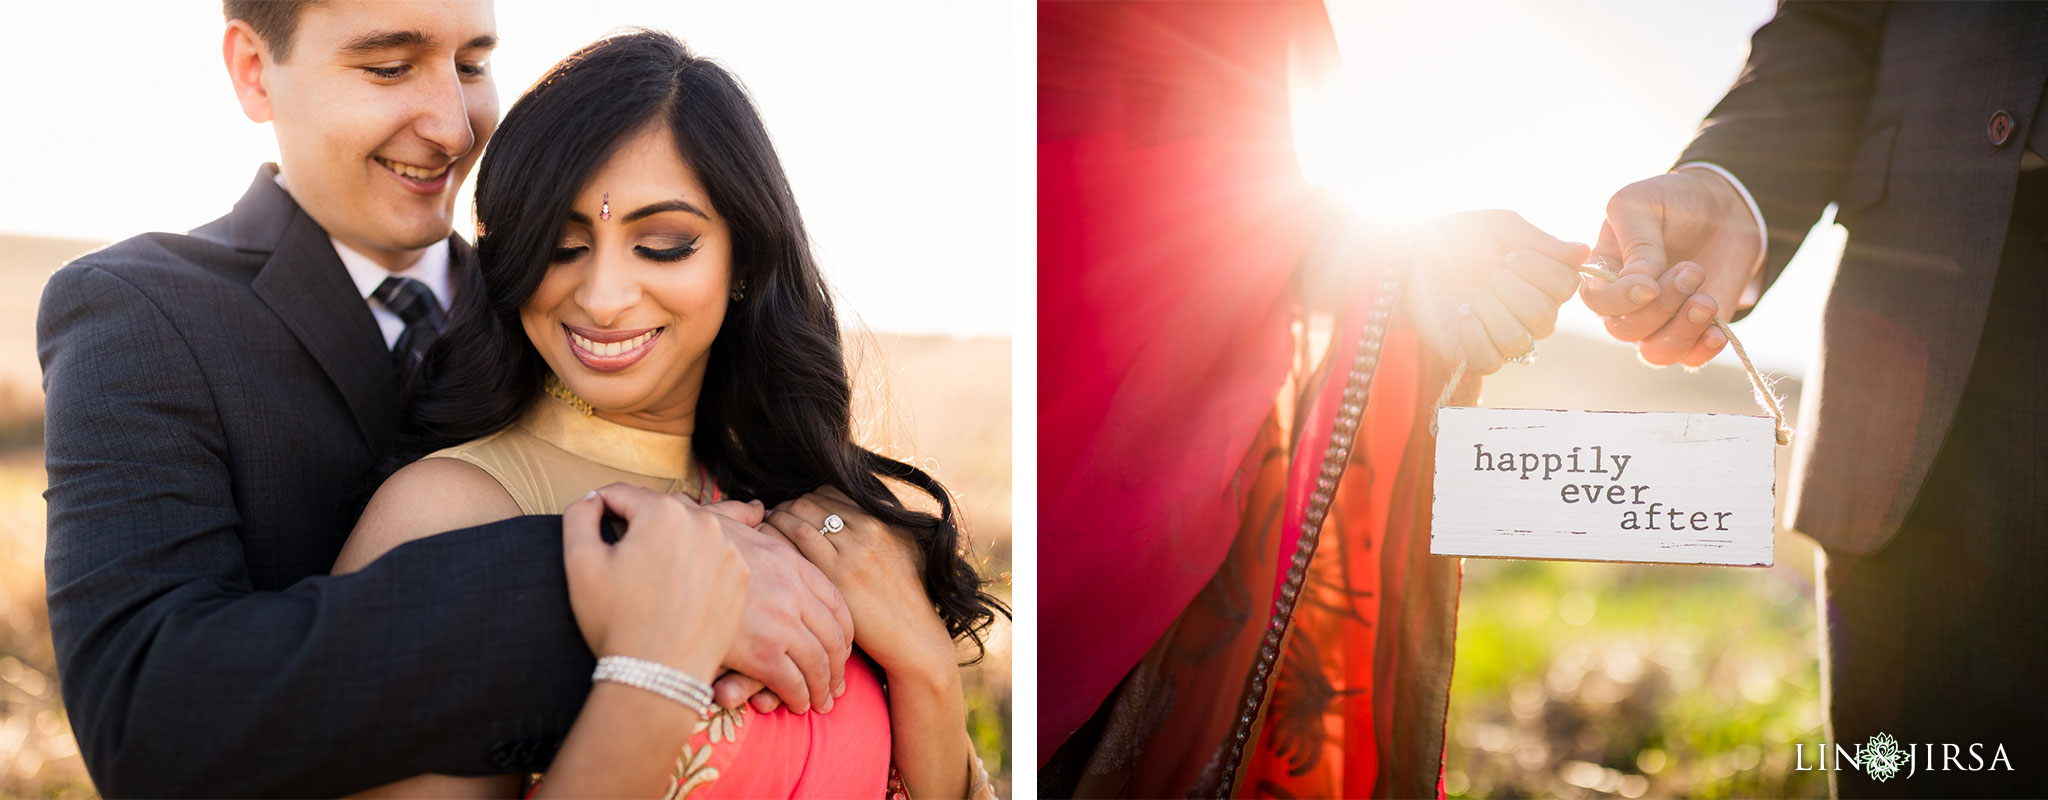 05 quail hill orange county indian engagement photography